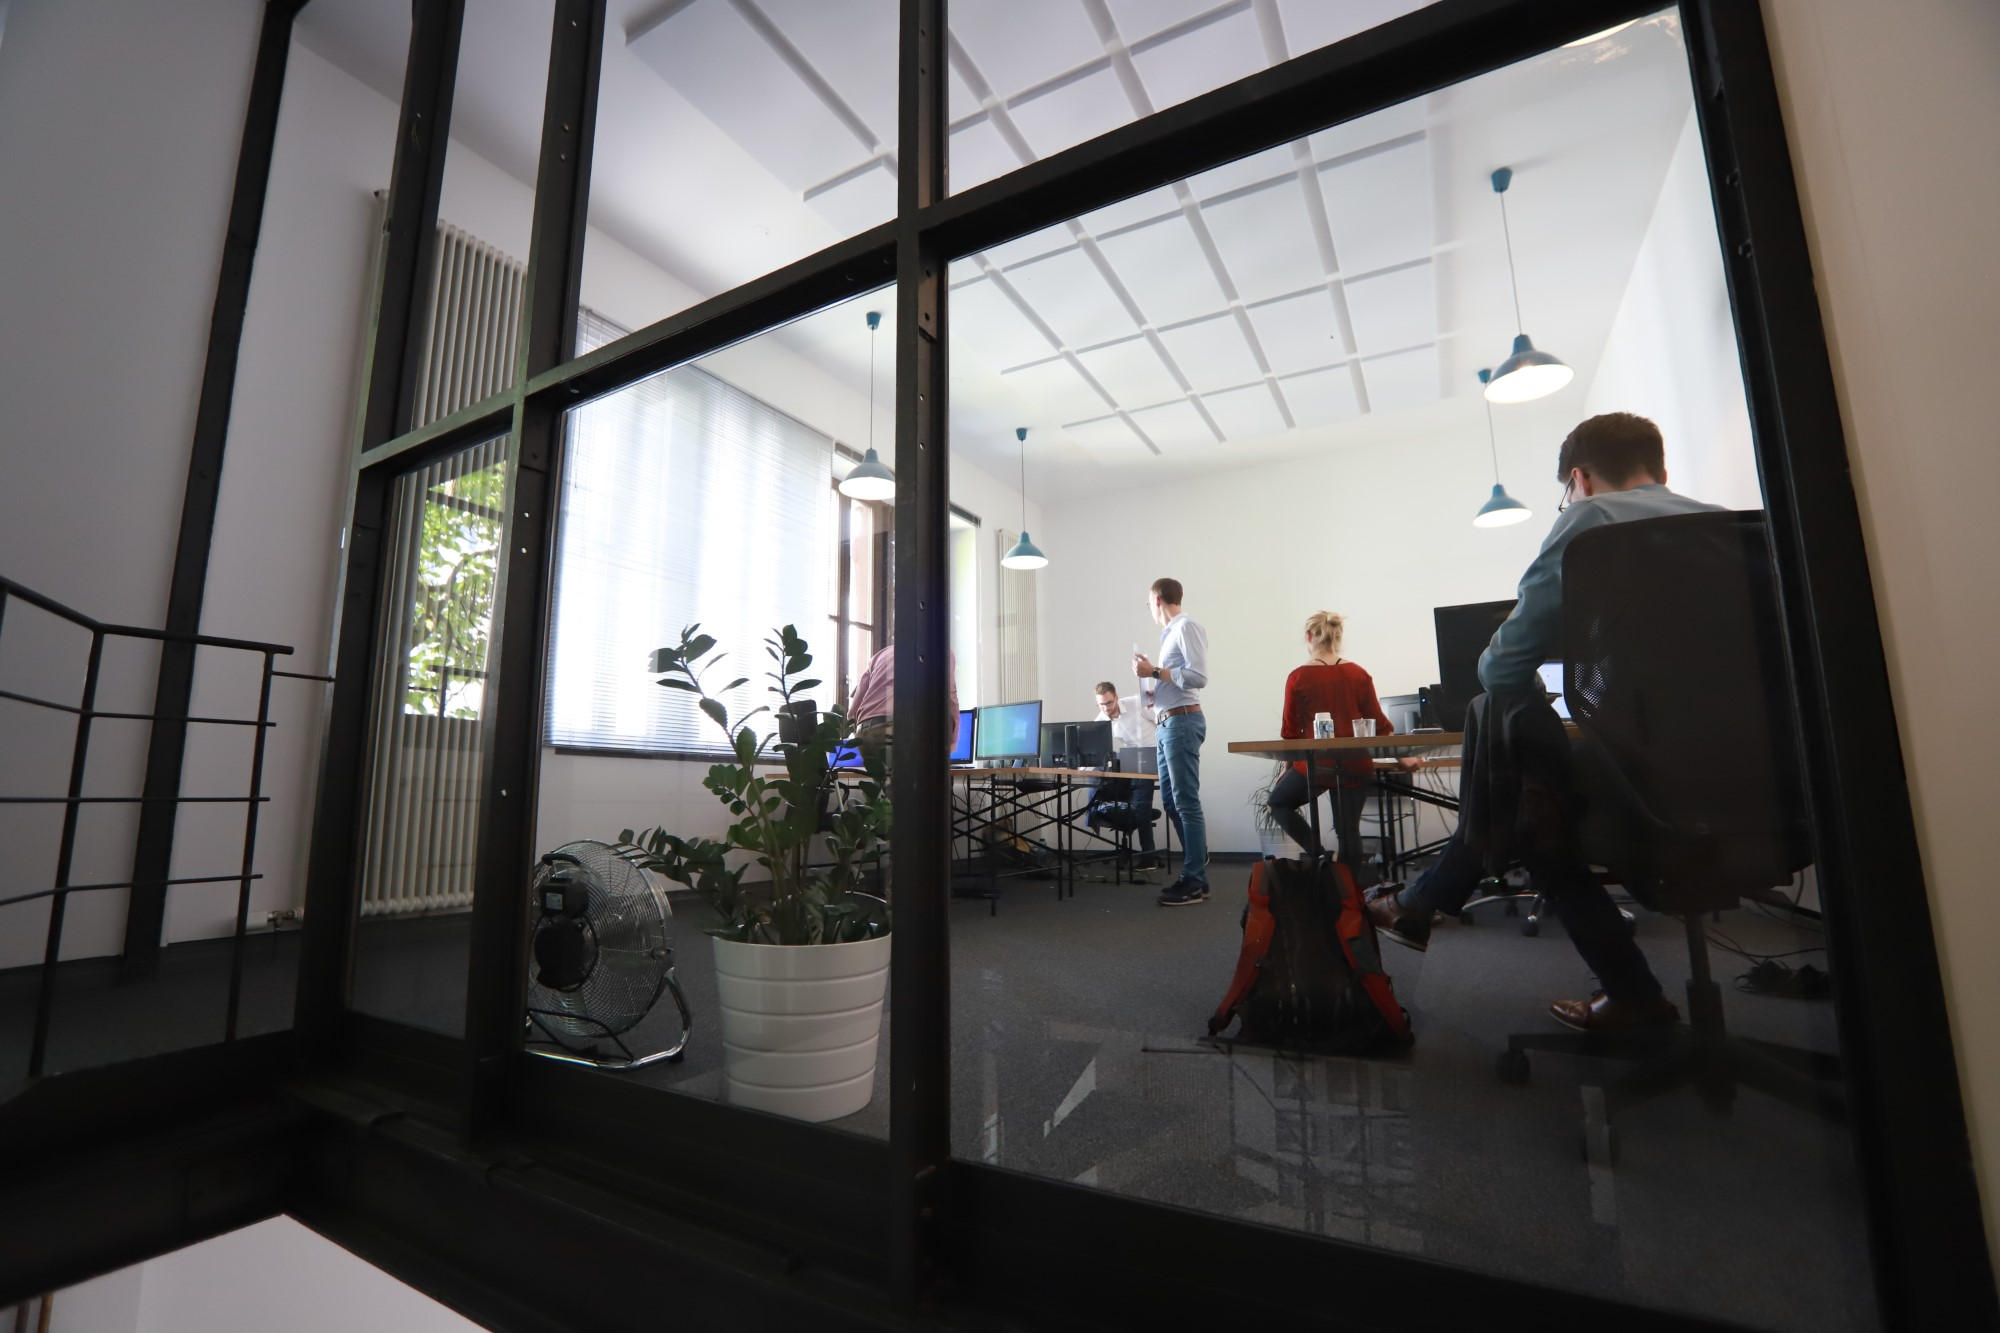 Engineers in a work environment in their office